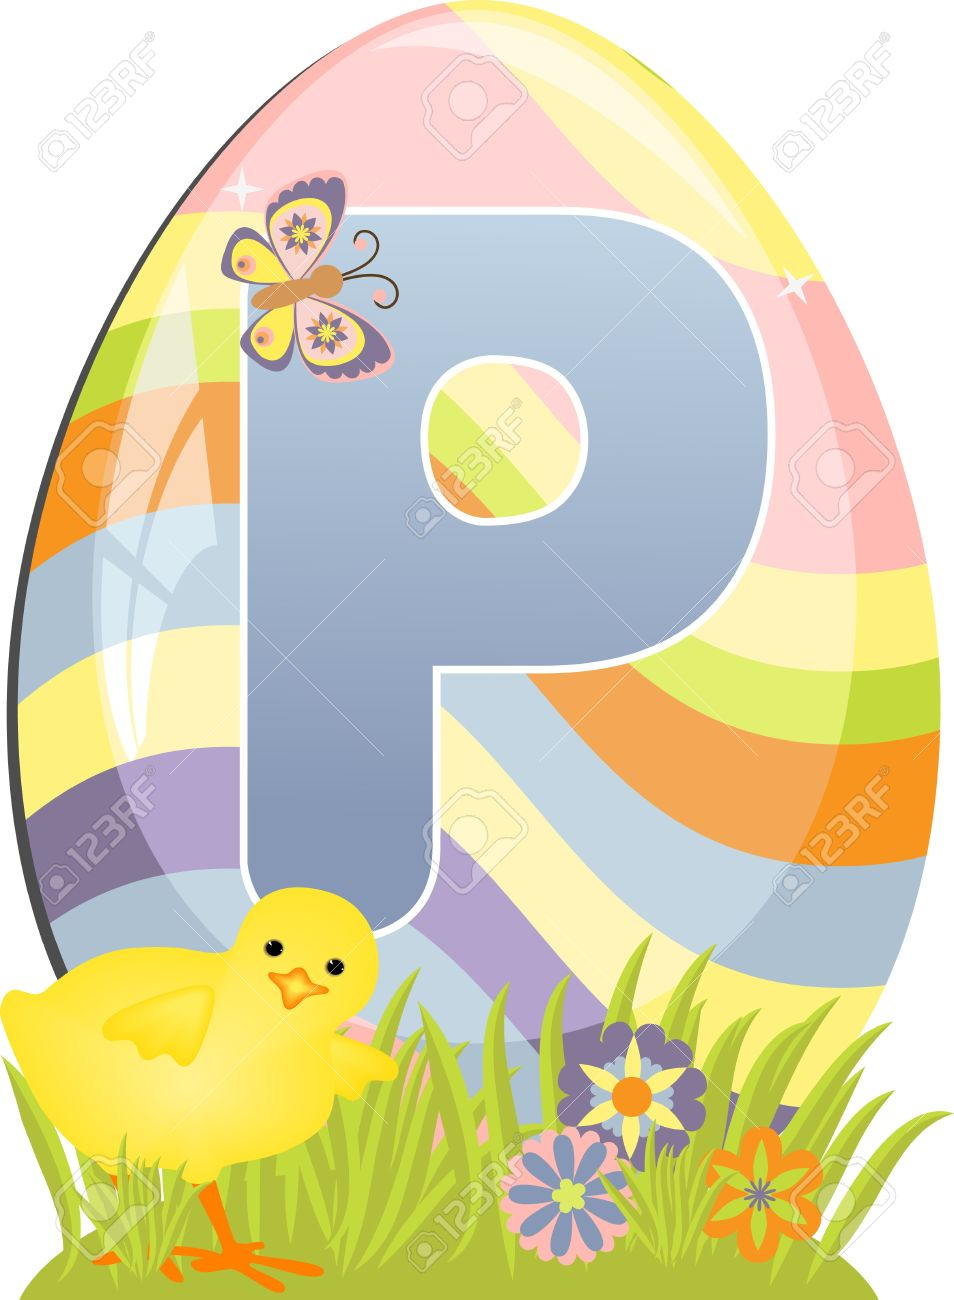 Cute Initial Letter P For Easter Design Royalty Free Cliparts.